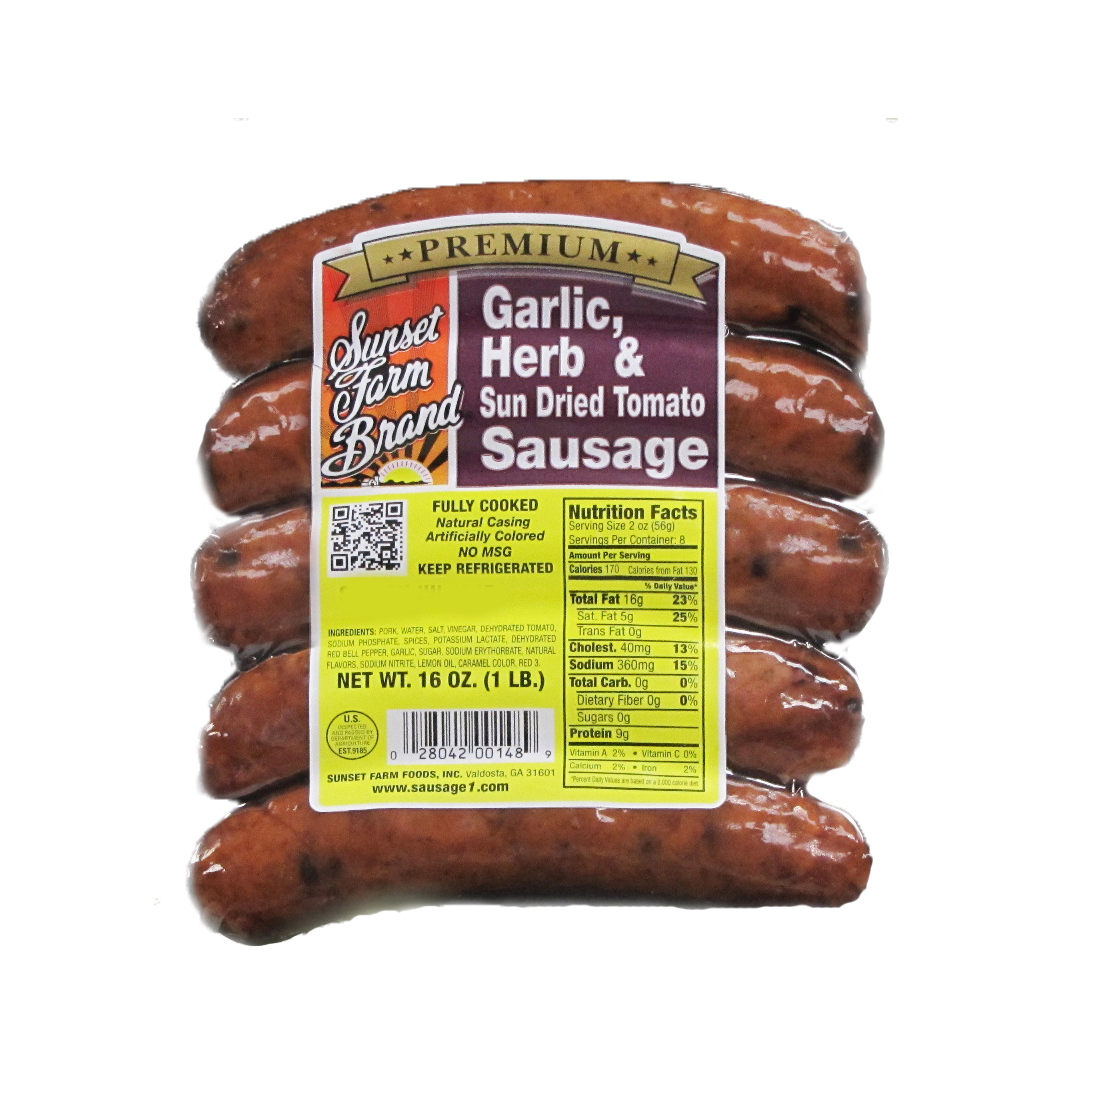 Sunset Farm Foods Garlic, Herb & Sun Dried Tomato Smoked Sausage, 16 Oz.